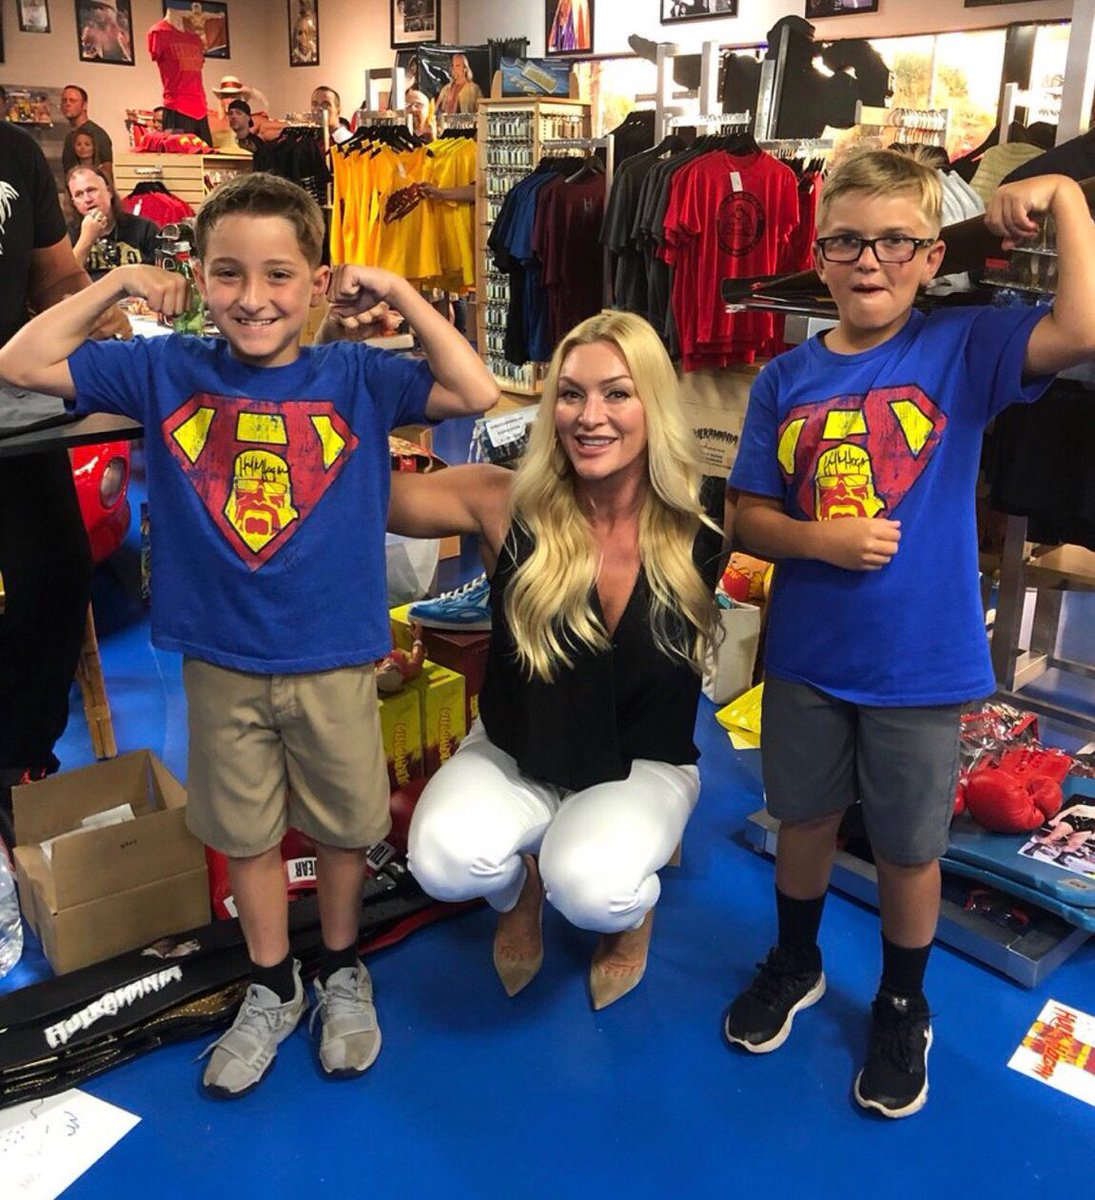 Last night in Orlando at @HogansOrlando, my wife Jennifer hanging out with a couple Maniacs that are wearing Superman Hulk shirts! Really cool Brother. HH